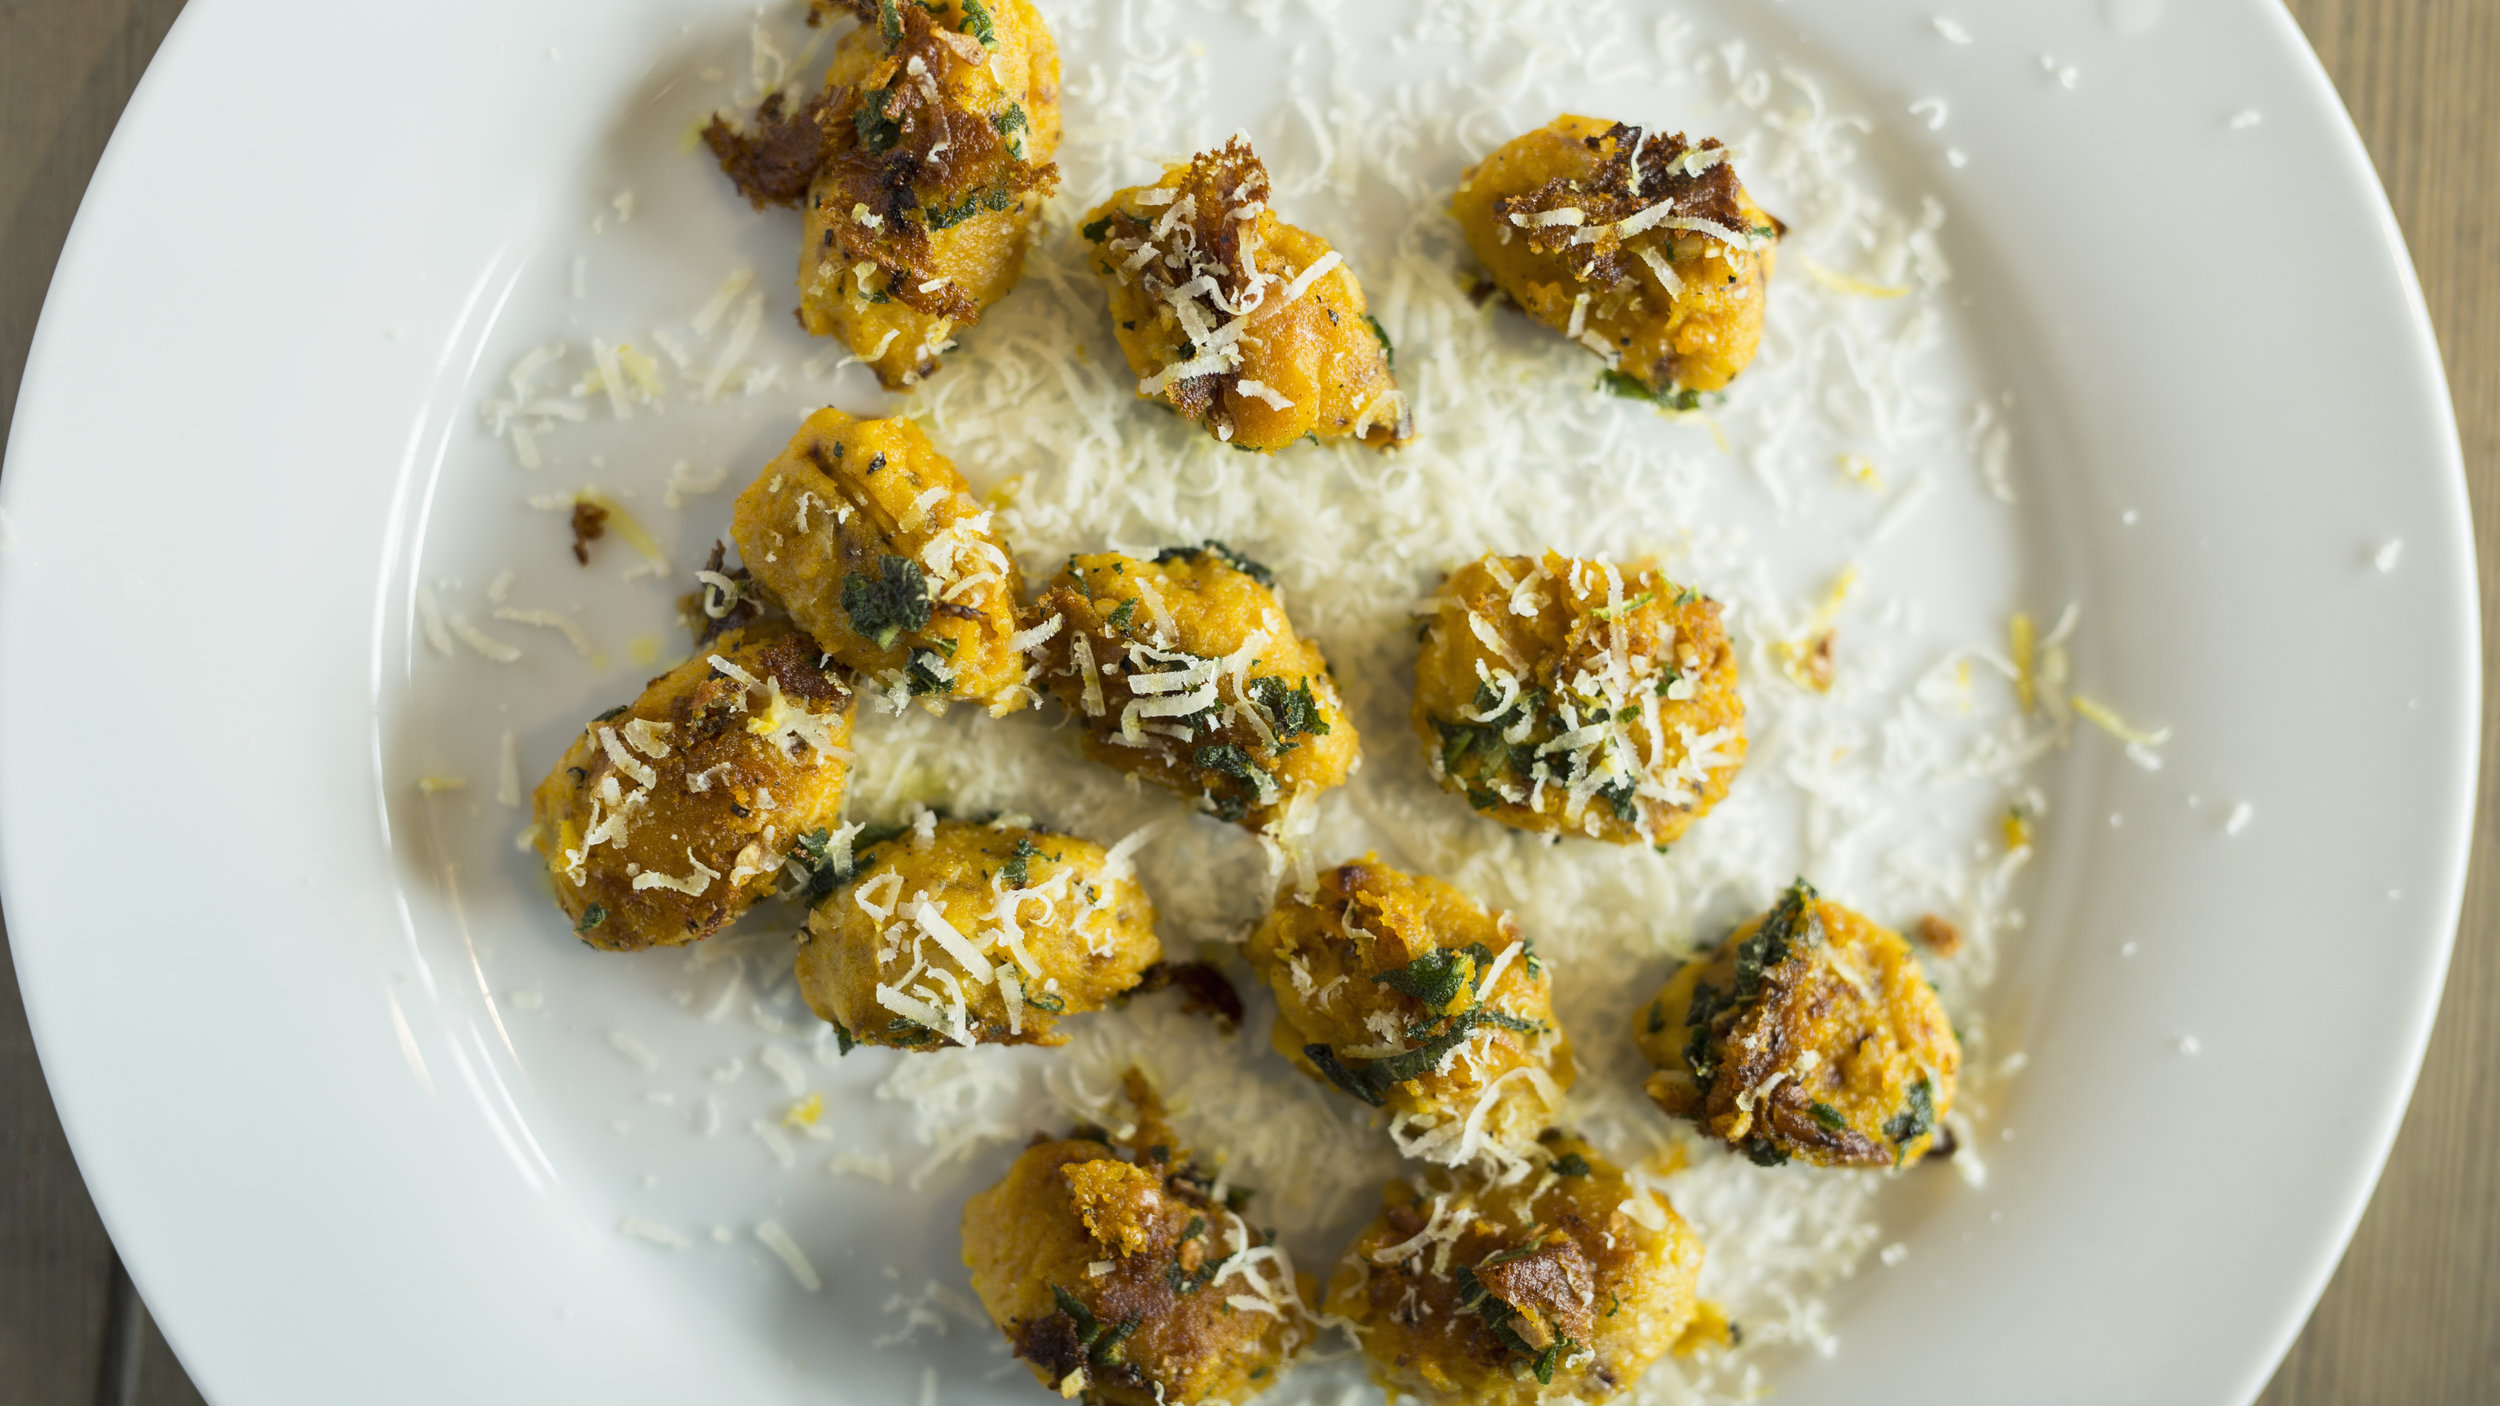 I was lucky enough to go to the Barfoots farm in Chichester a few weeks ago to film some recipes and here is my squash gnocchi made with their incredible produce. For the full recipe head to their website here  http://www.barfoots.com/work/squash-gnocchi/